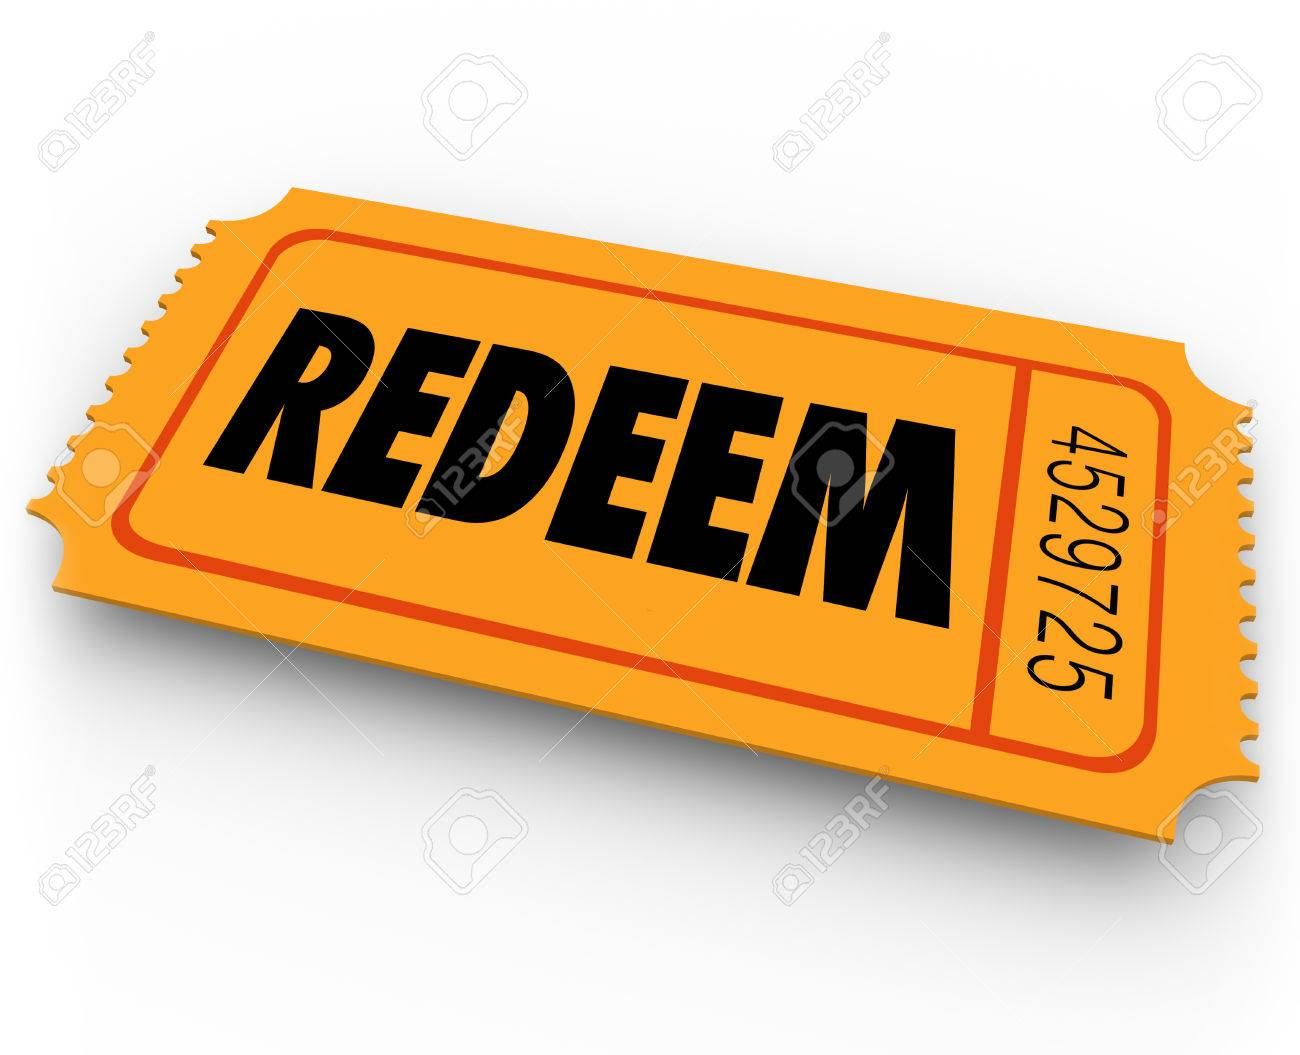 redeem word on an orange ticket to illustrate special offer redeem word on an orange ticket to illustrate special offer redemption or contest winning entry stock